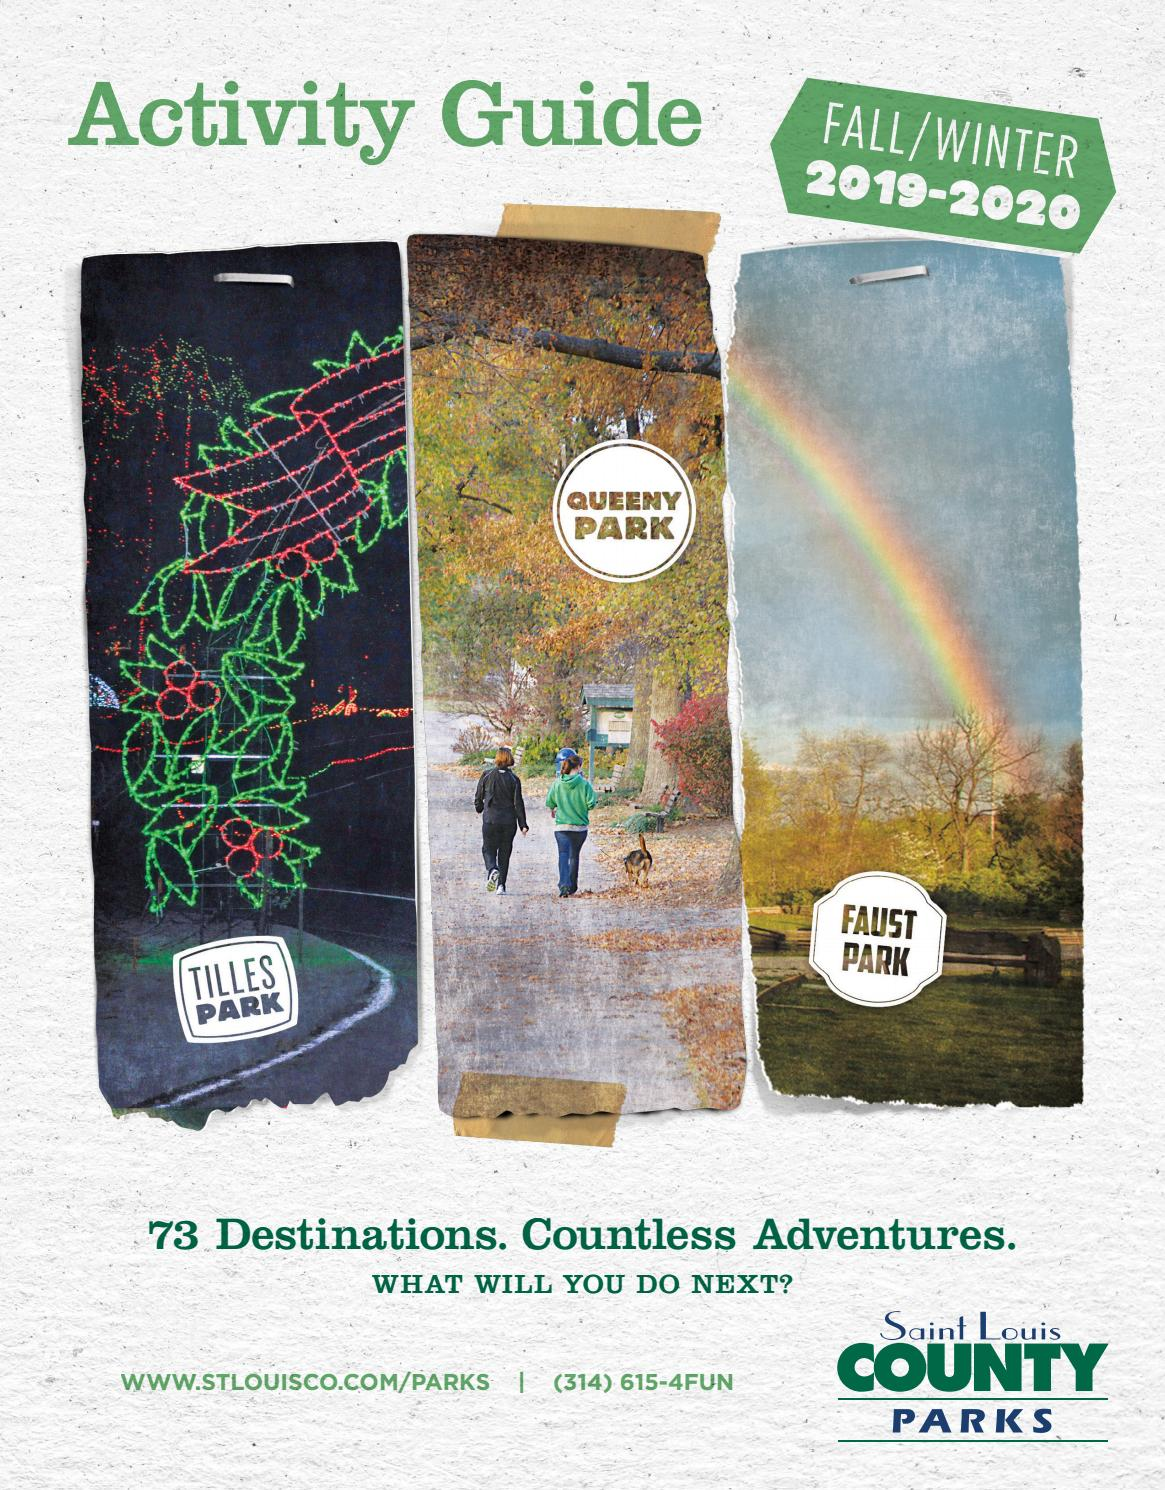 St Louis County Parks Halloween 2020 St. Louis County Parks Fall/Winter 2019 2020 Activity Guide by St